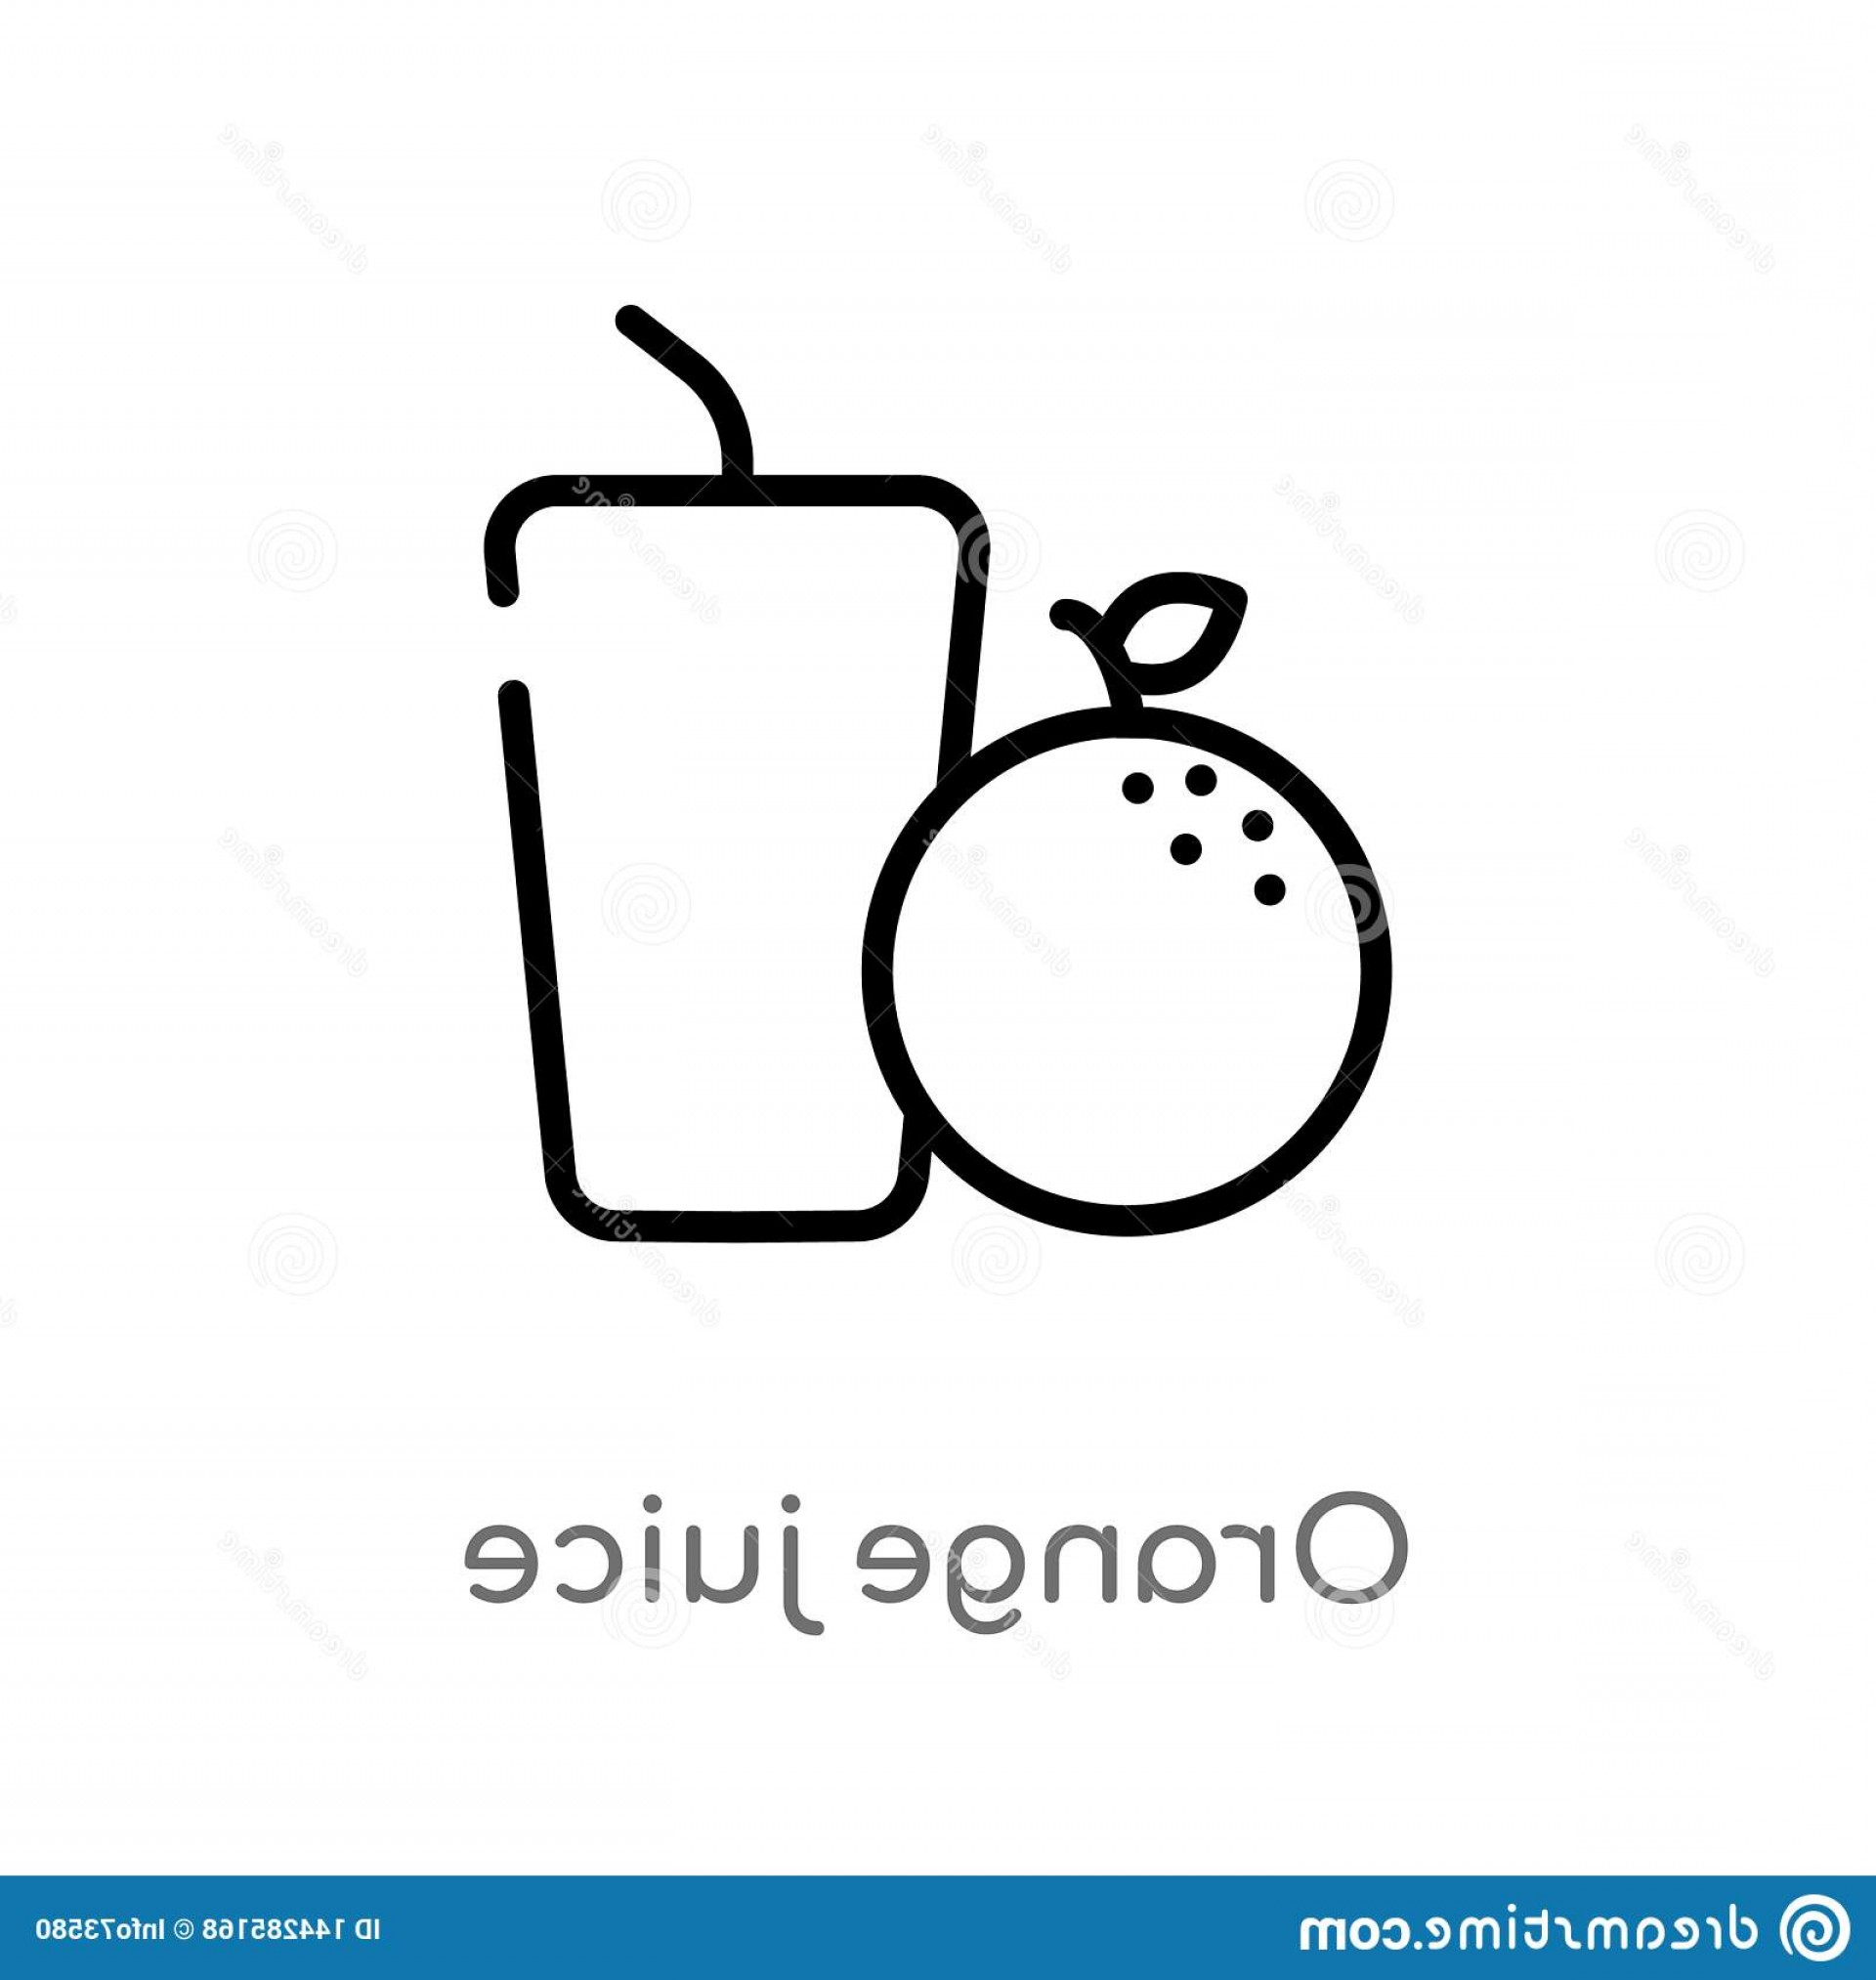 Juice Vector Black: Outline Orange Juice Vector Icon Isolated Black Simple Line Element Illustration Health Concept Editable Stroke White Image